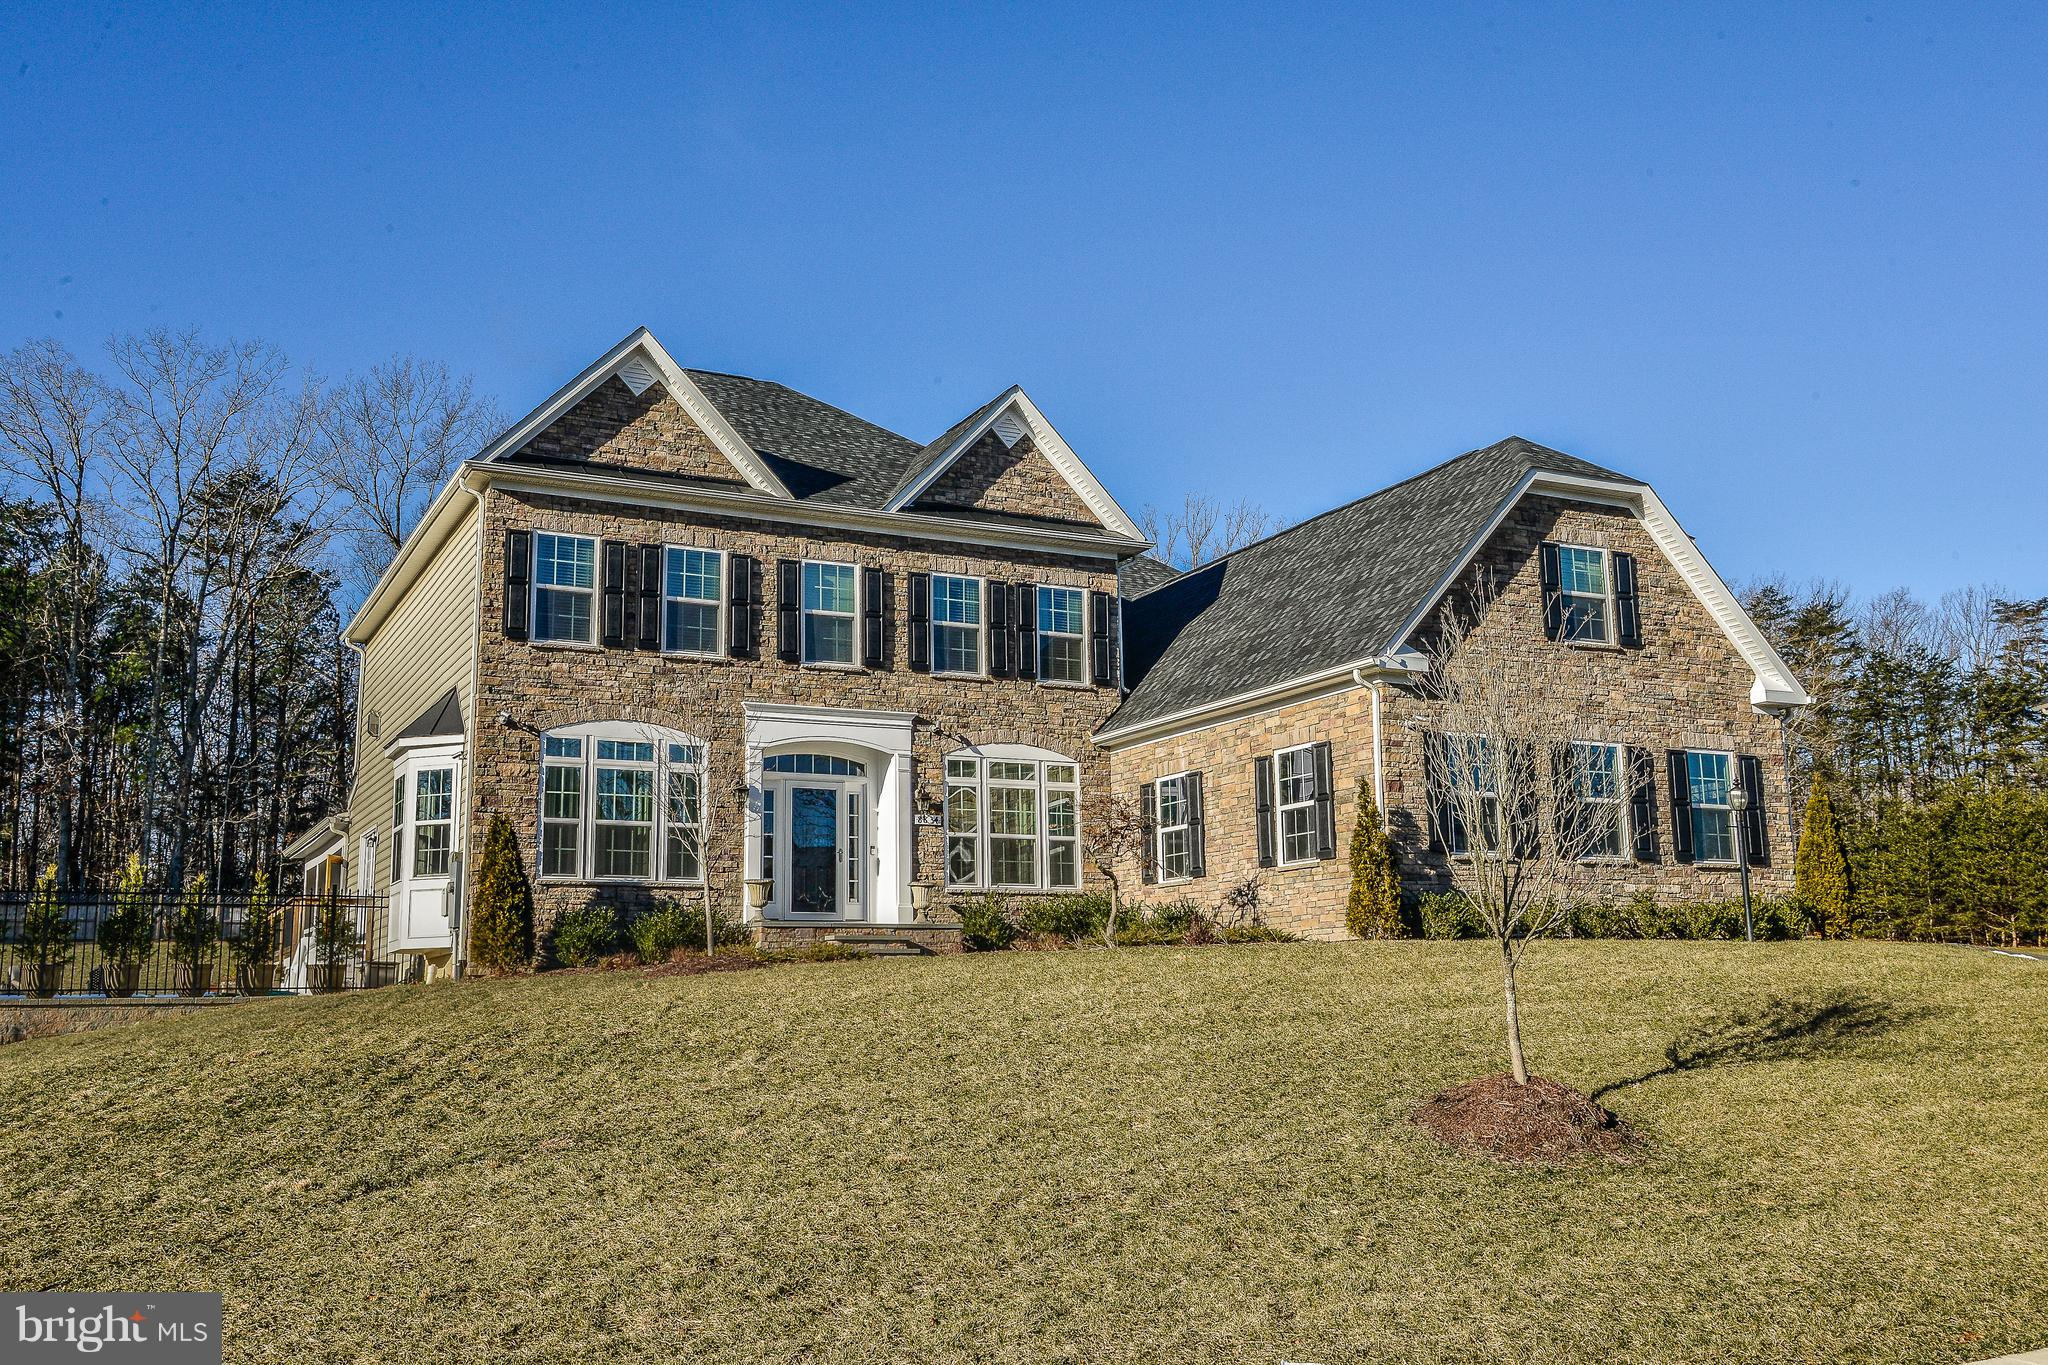 8834 CHRISANTHE COURT, FAIRFAX STATION, VA 22039